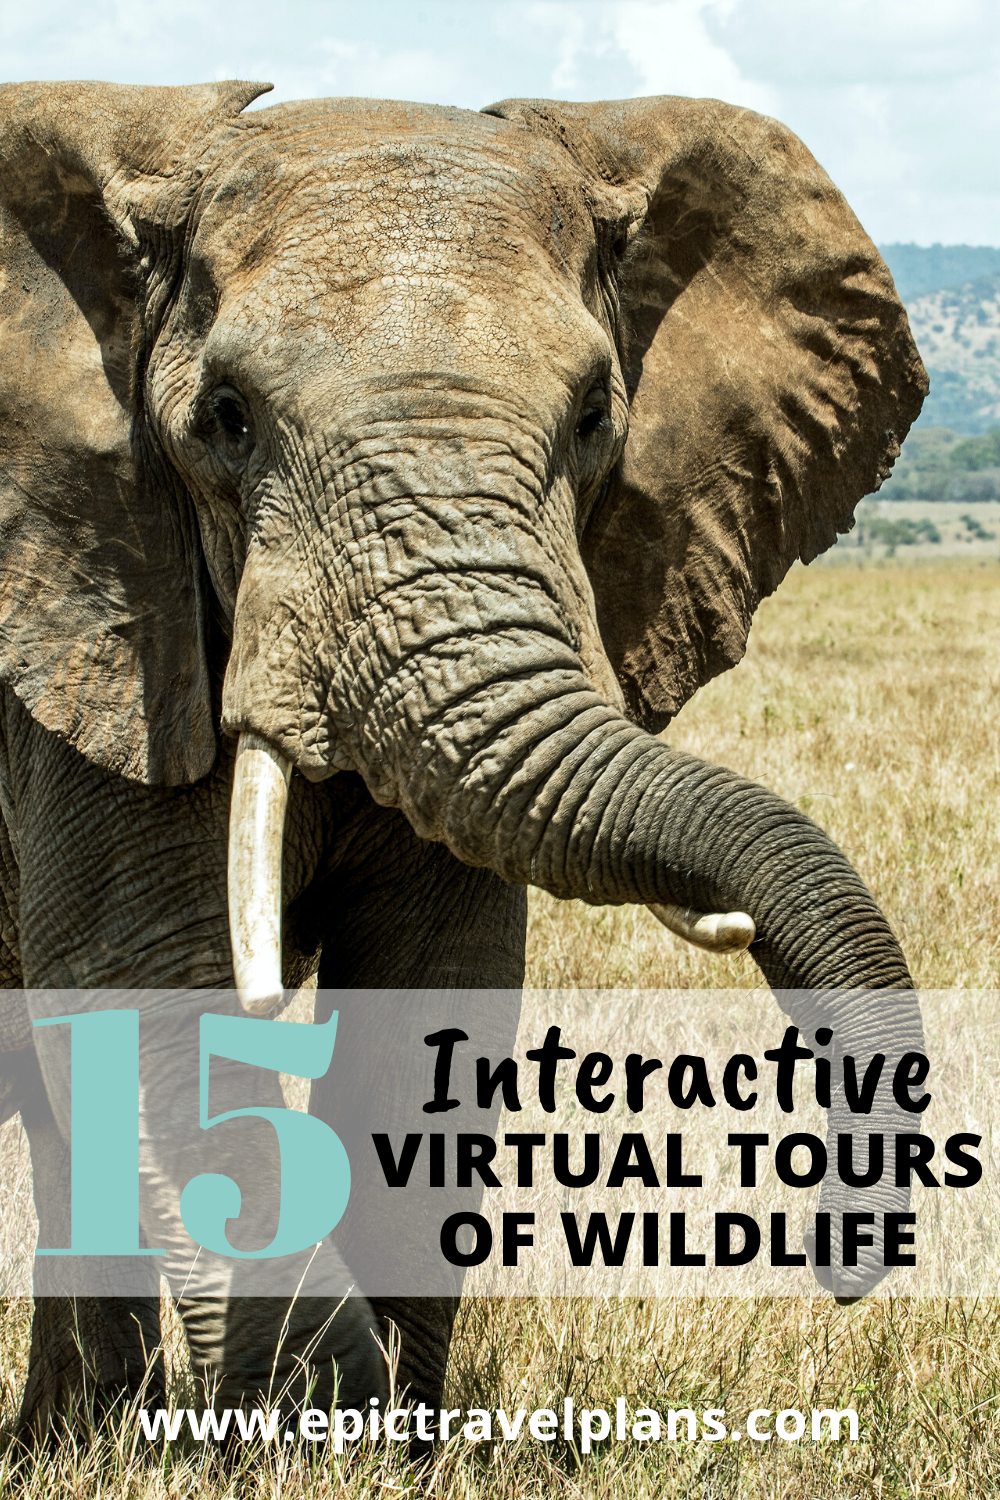 Interactive virtual tours of wildlife, from safaris to the oceans